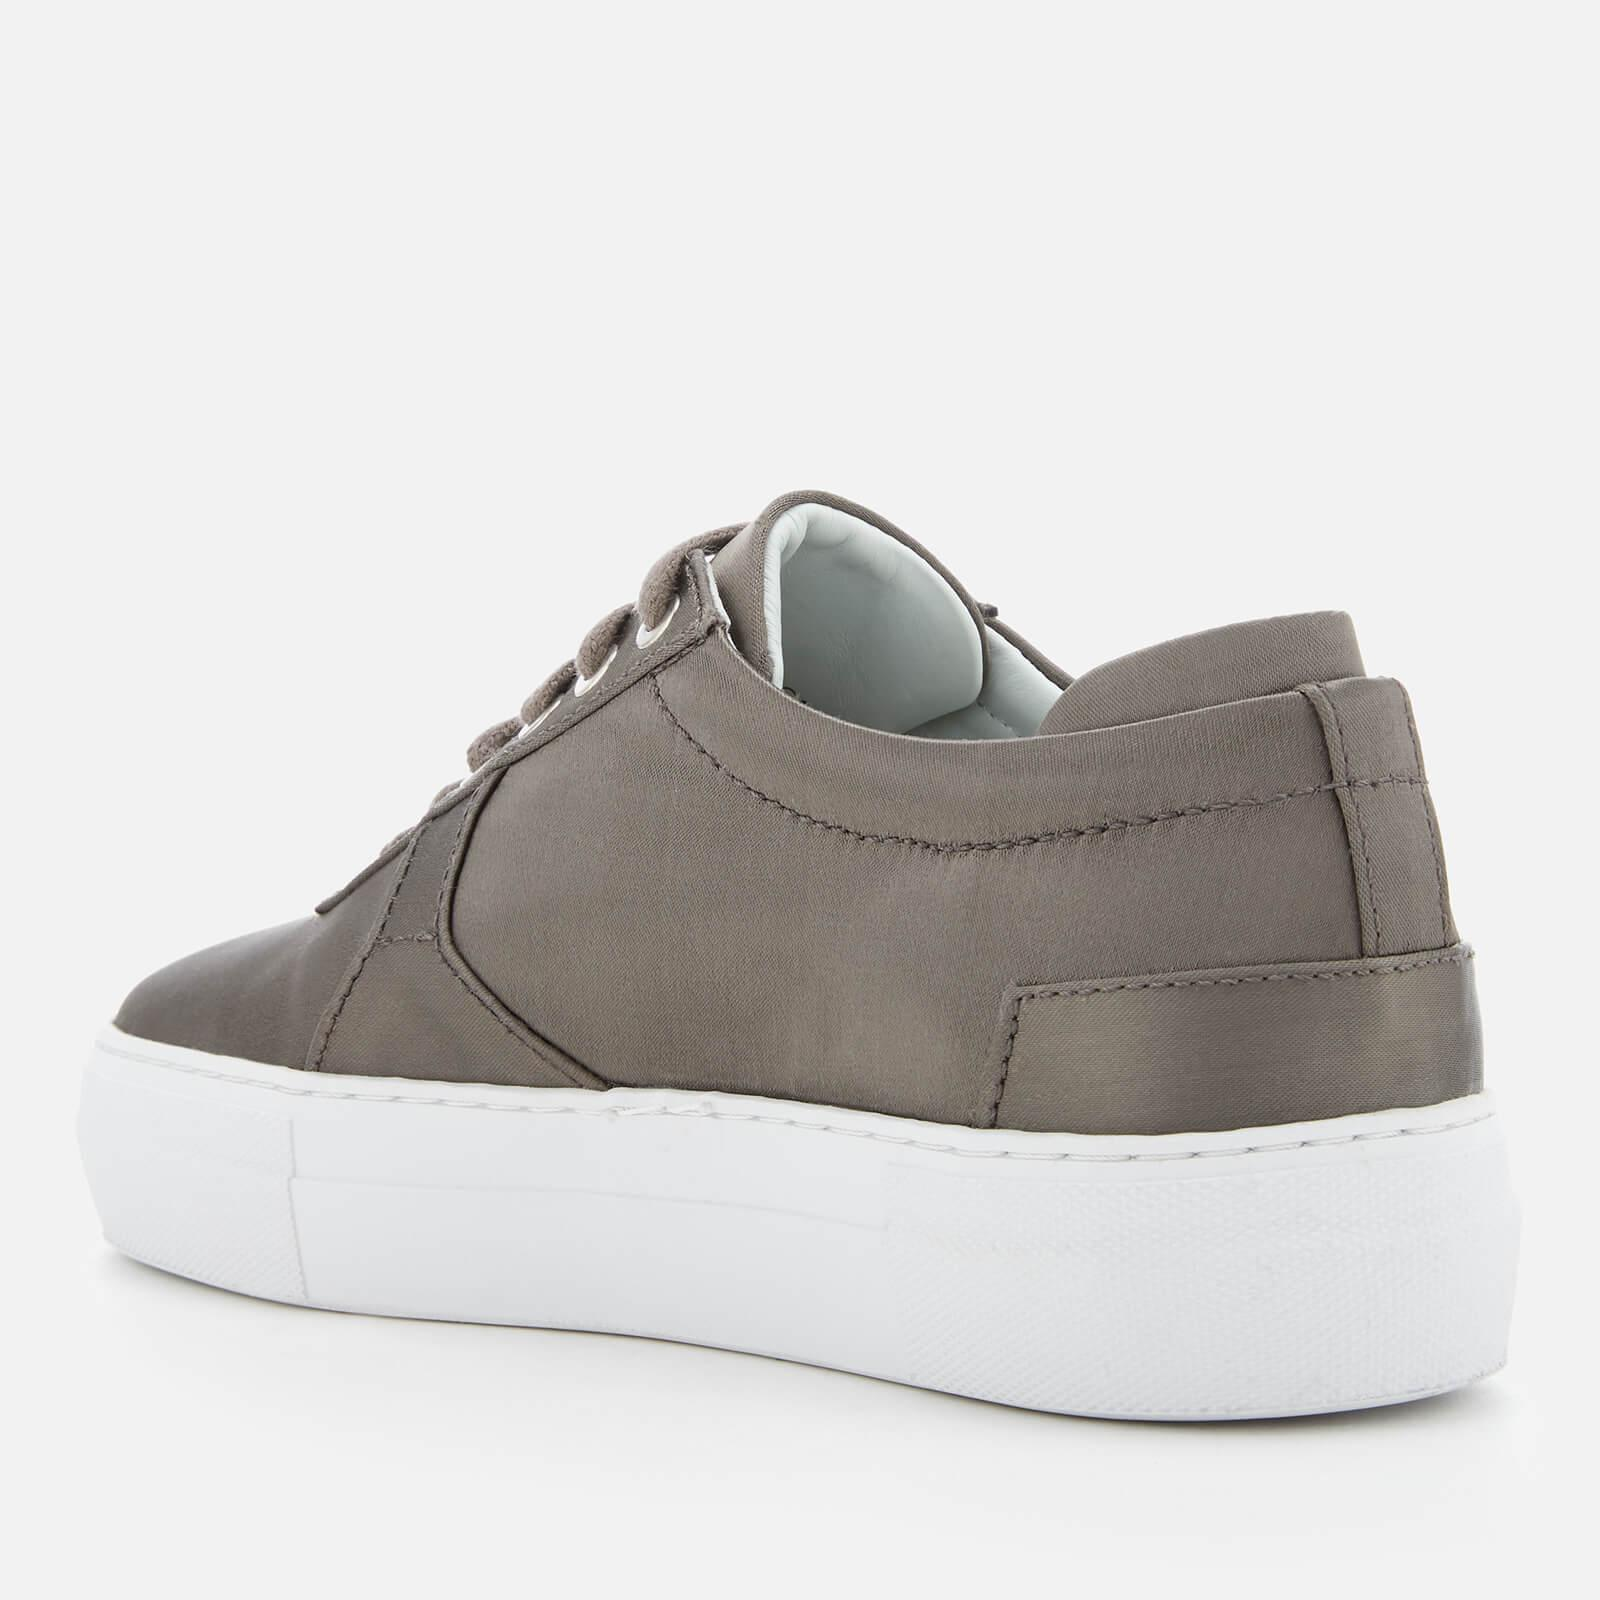 Axel Arigato Platform Satin Trainers in Grey (Grey)